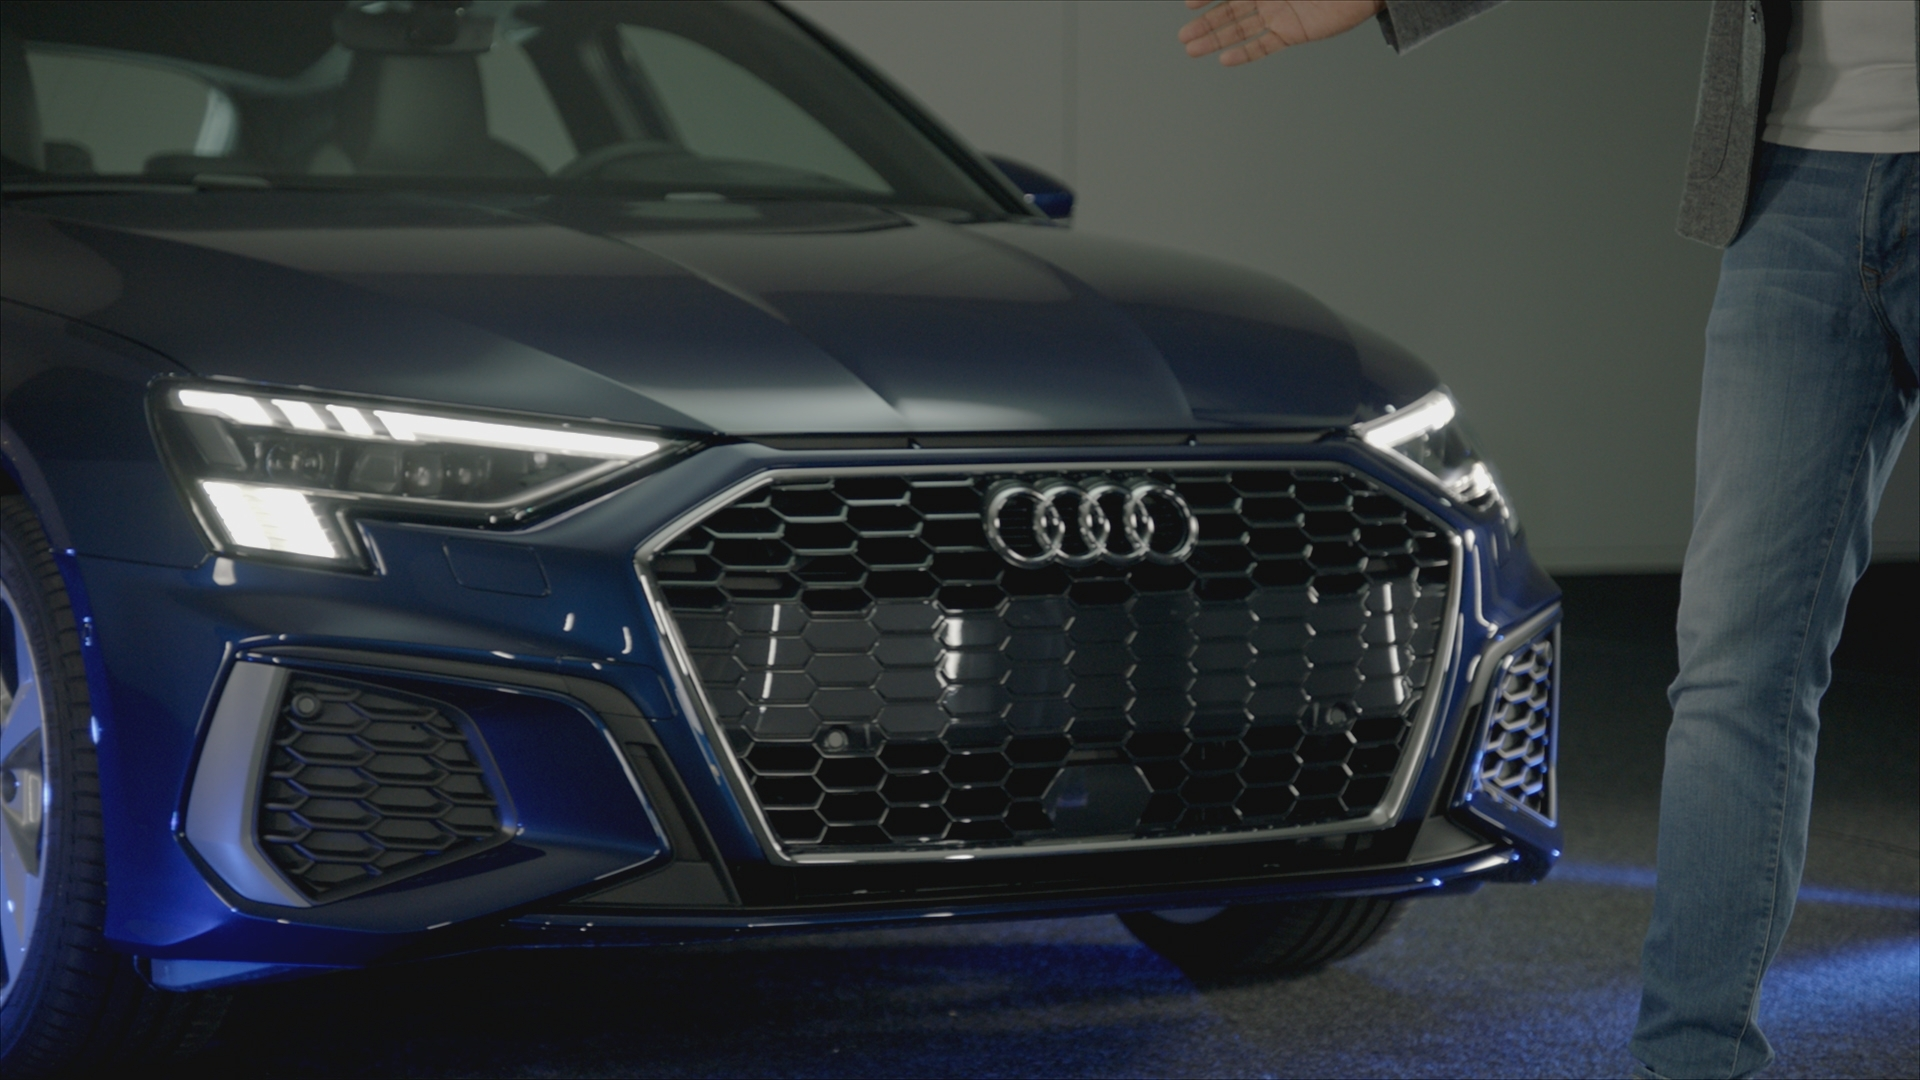 World premiere show - Audi A3 Sportback and e-tron S  prototype